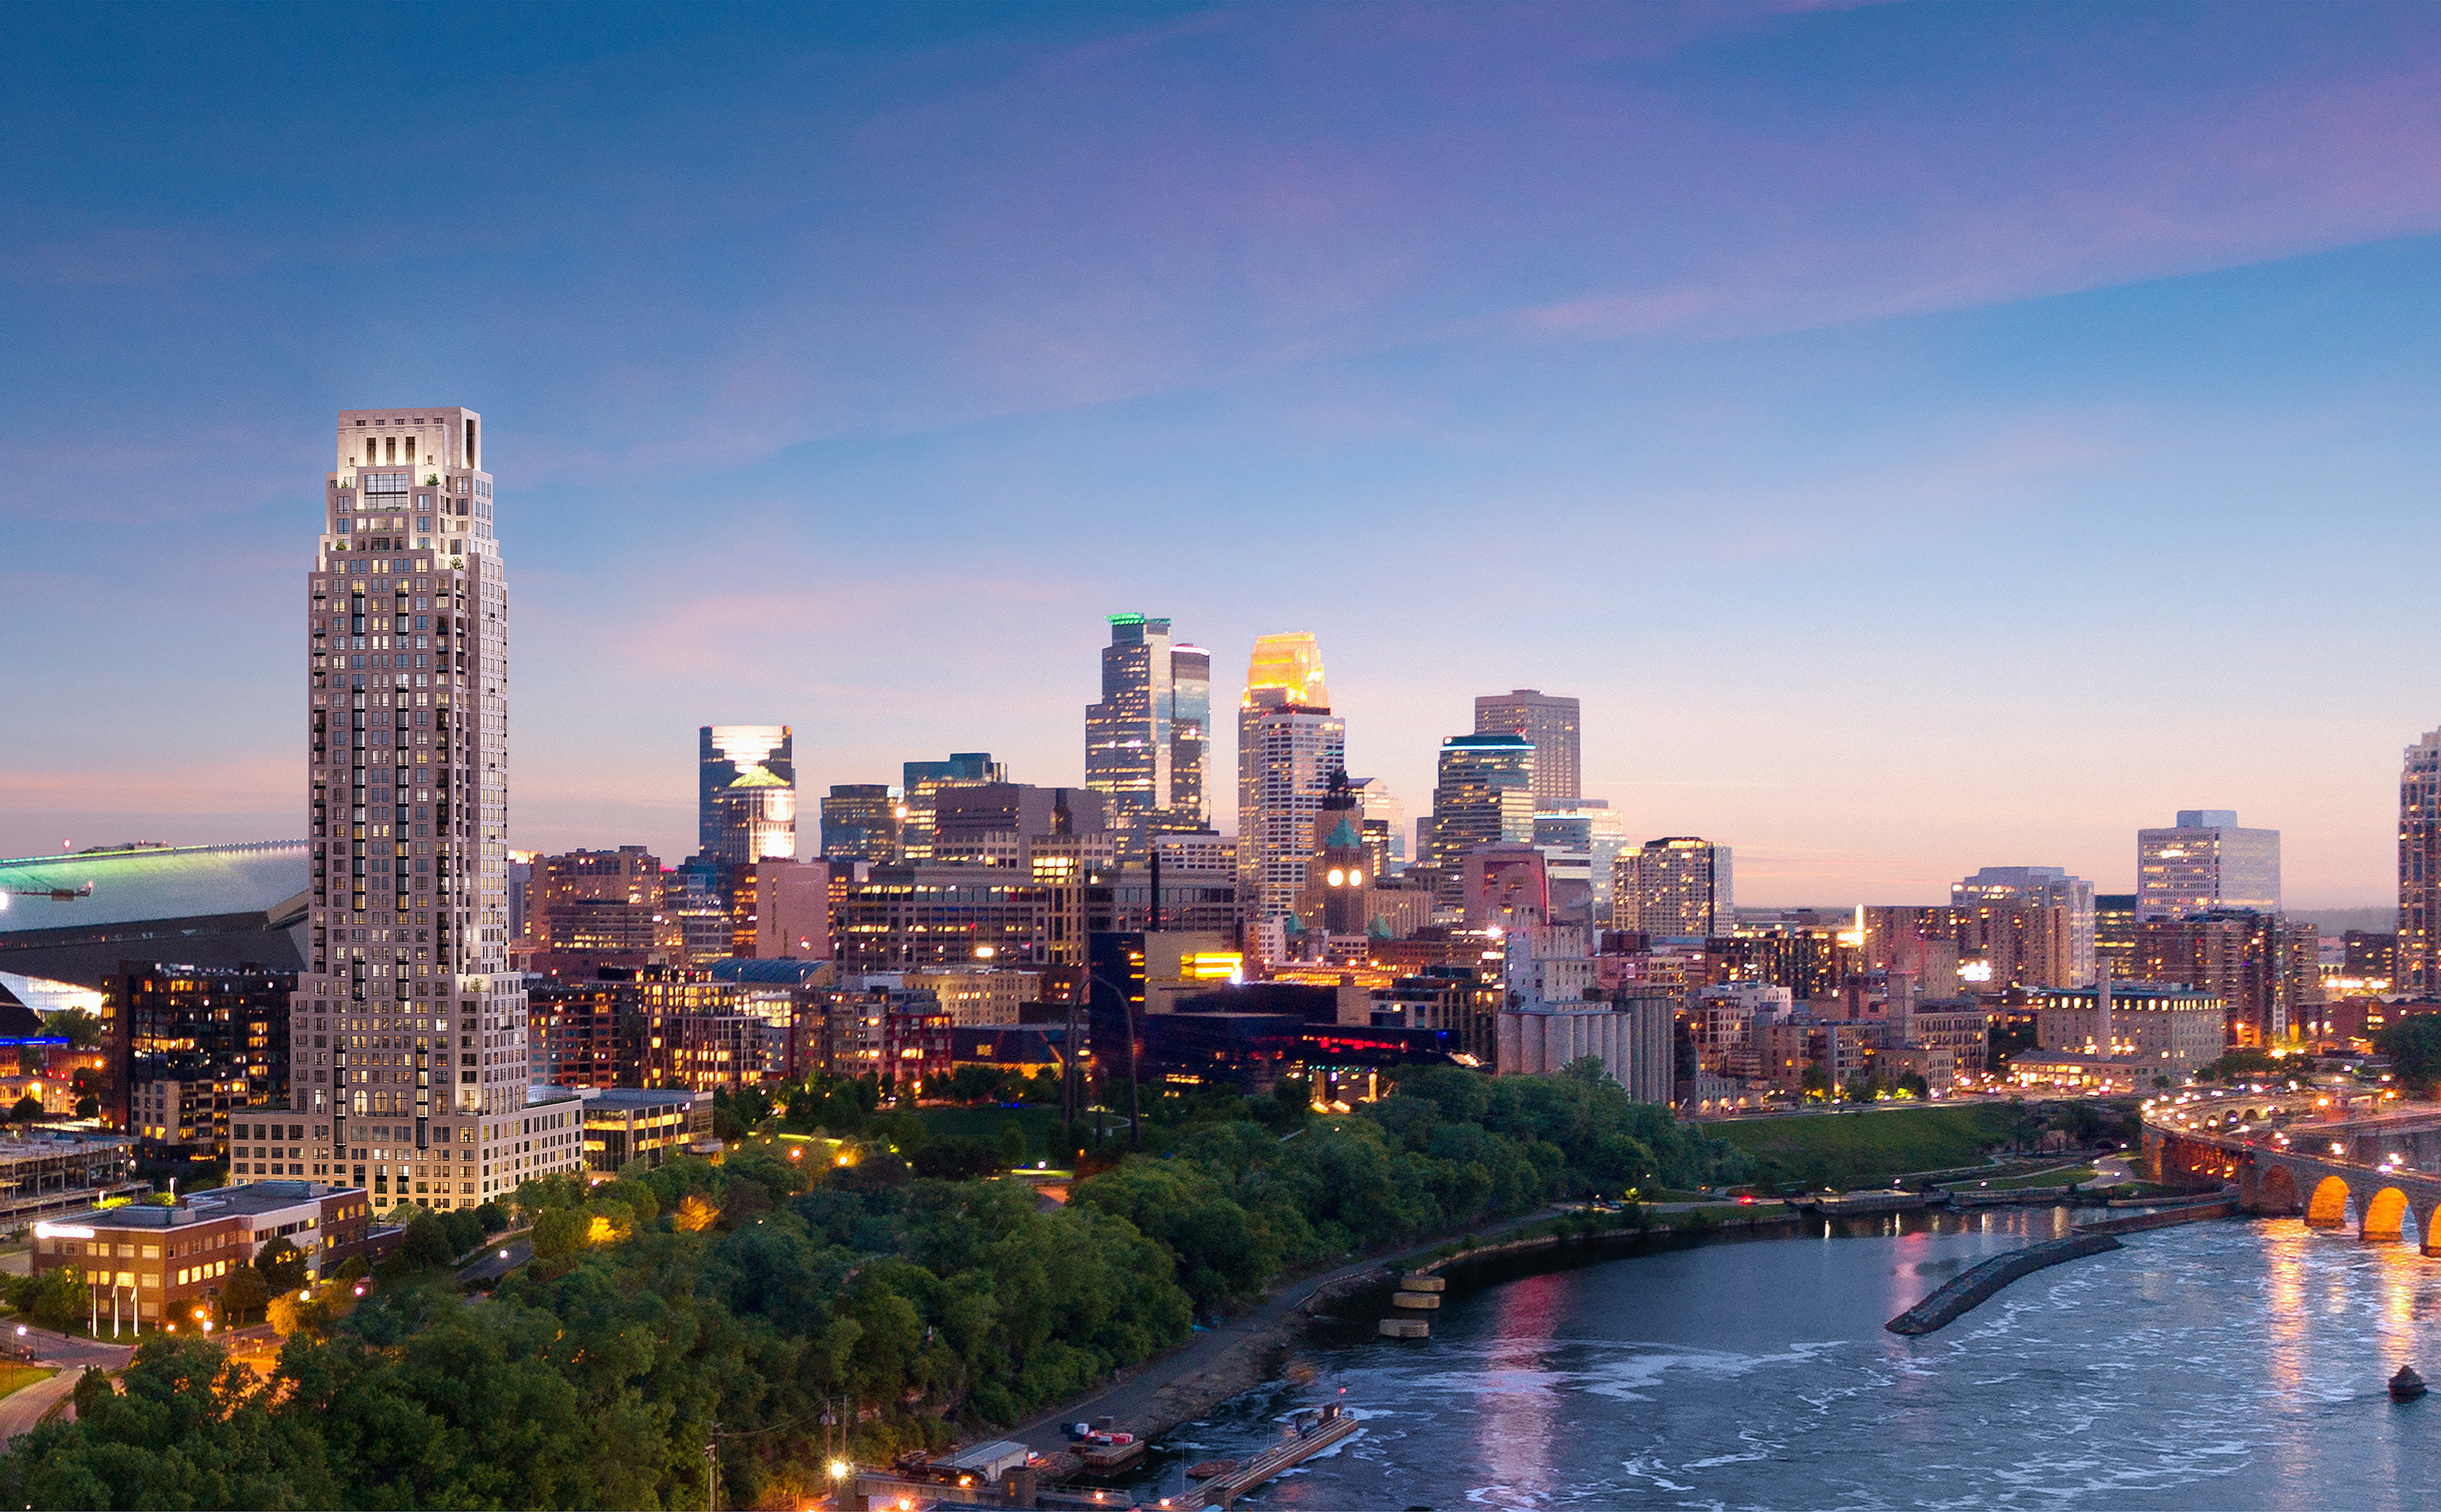 Eleven multifamily tower in the Minneapolis skyline